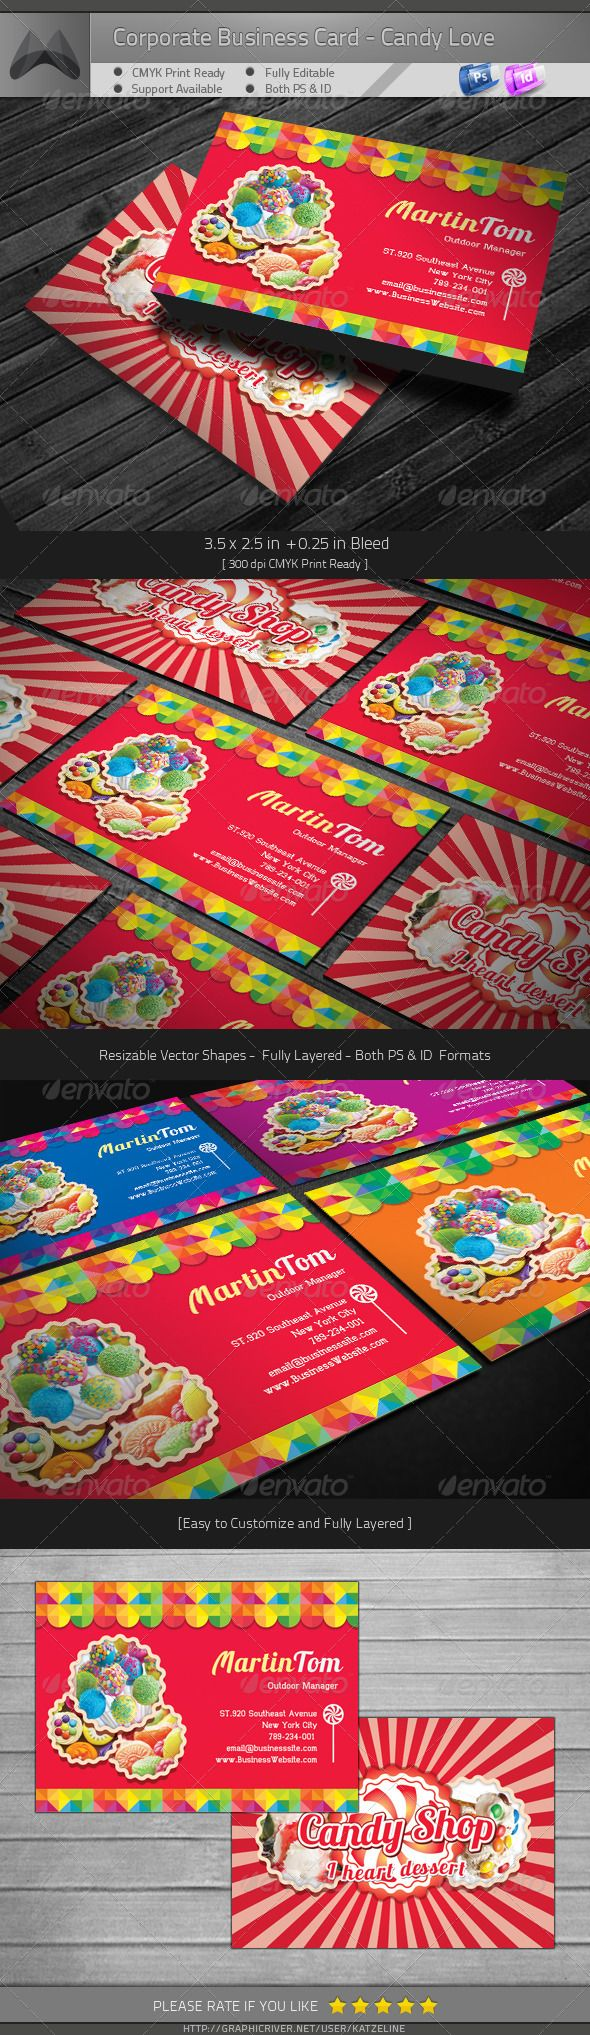 Sweet candy love business card business cards corporate business sweet candy love business card graphicriver corporate business card sweet candy love includes 3525 in 025in bleed 300dpi cmyk print ready reheart Image collections